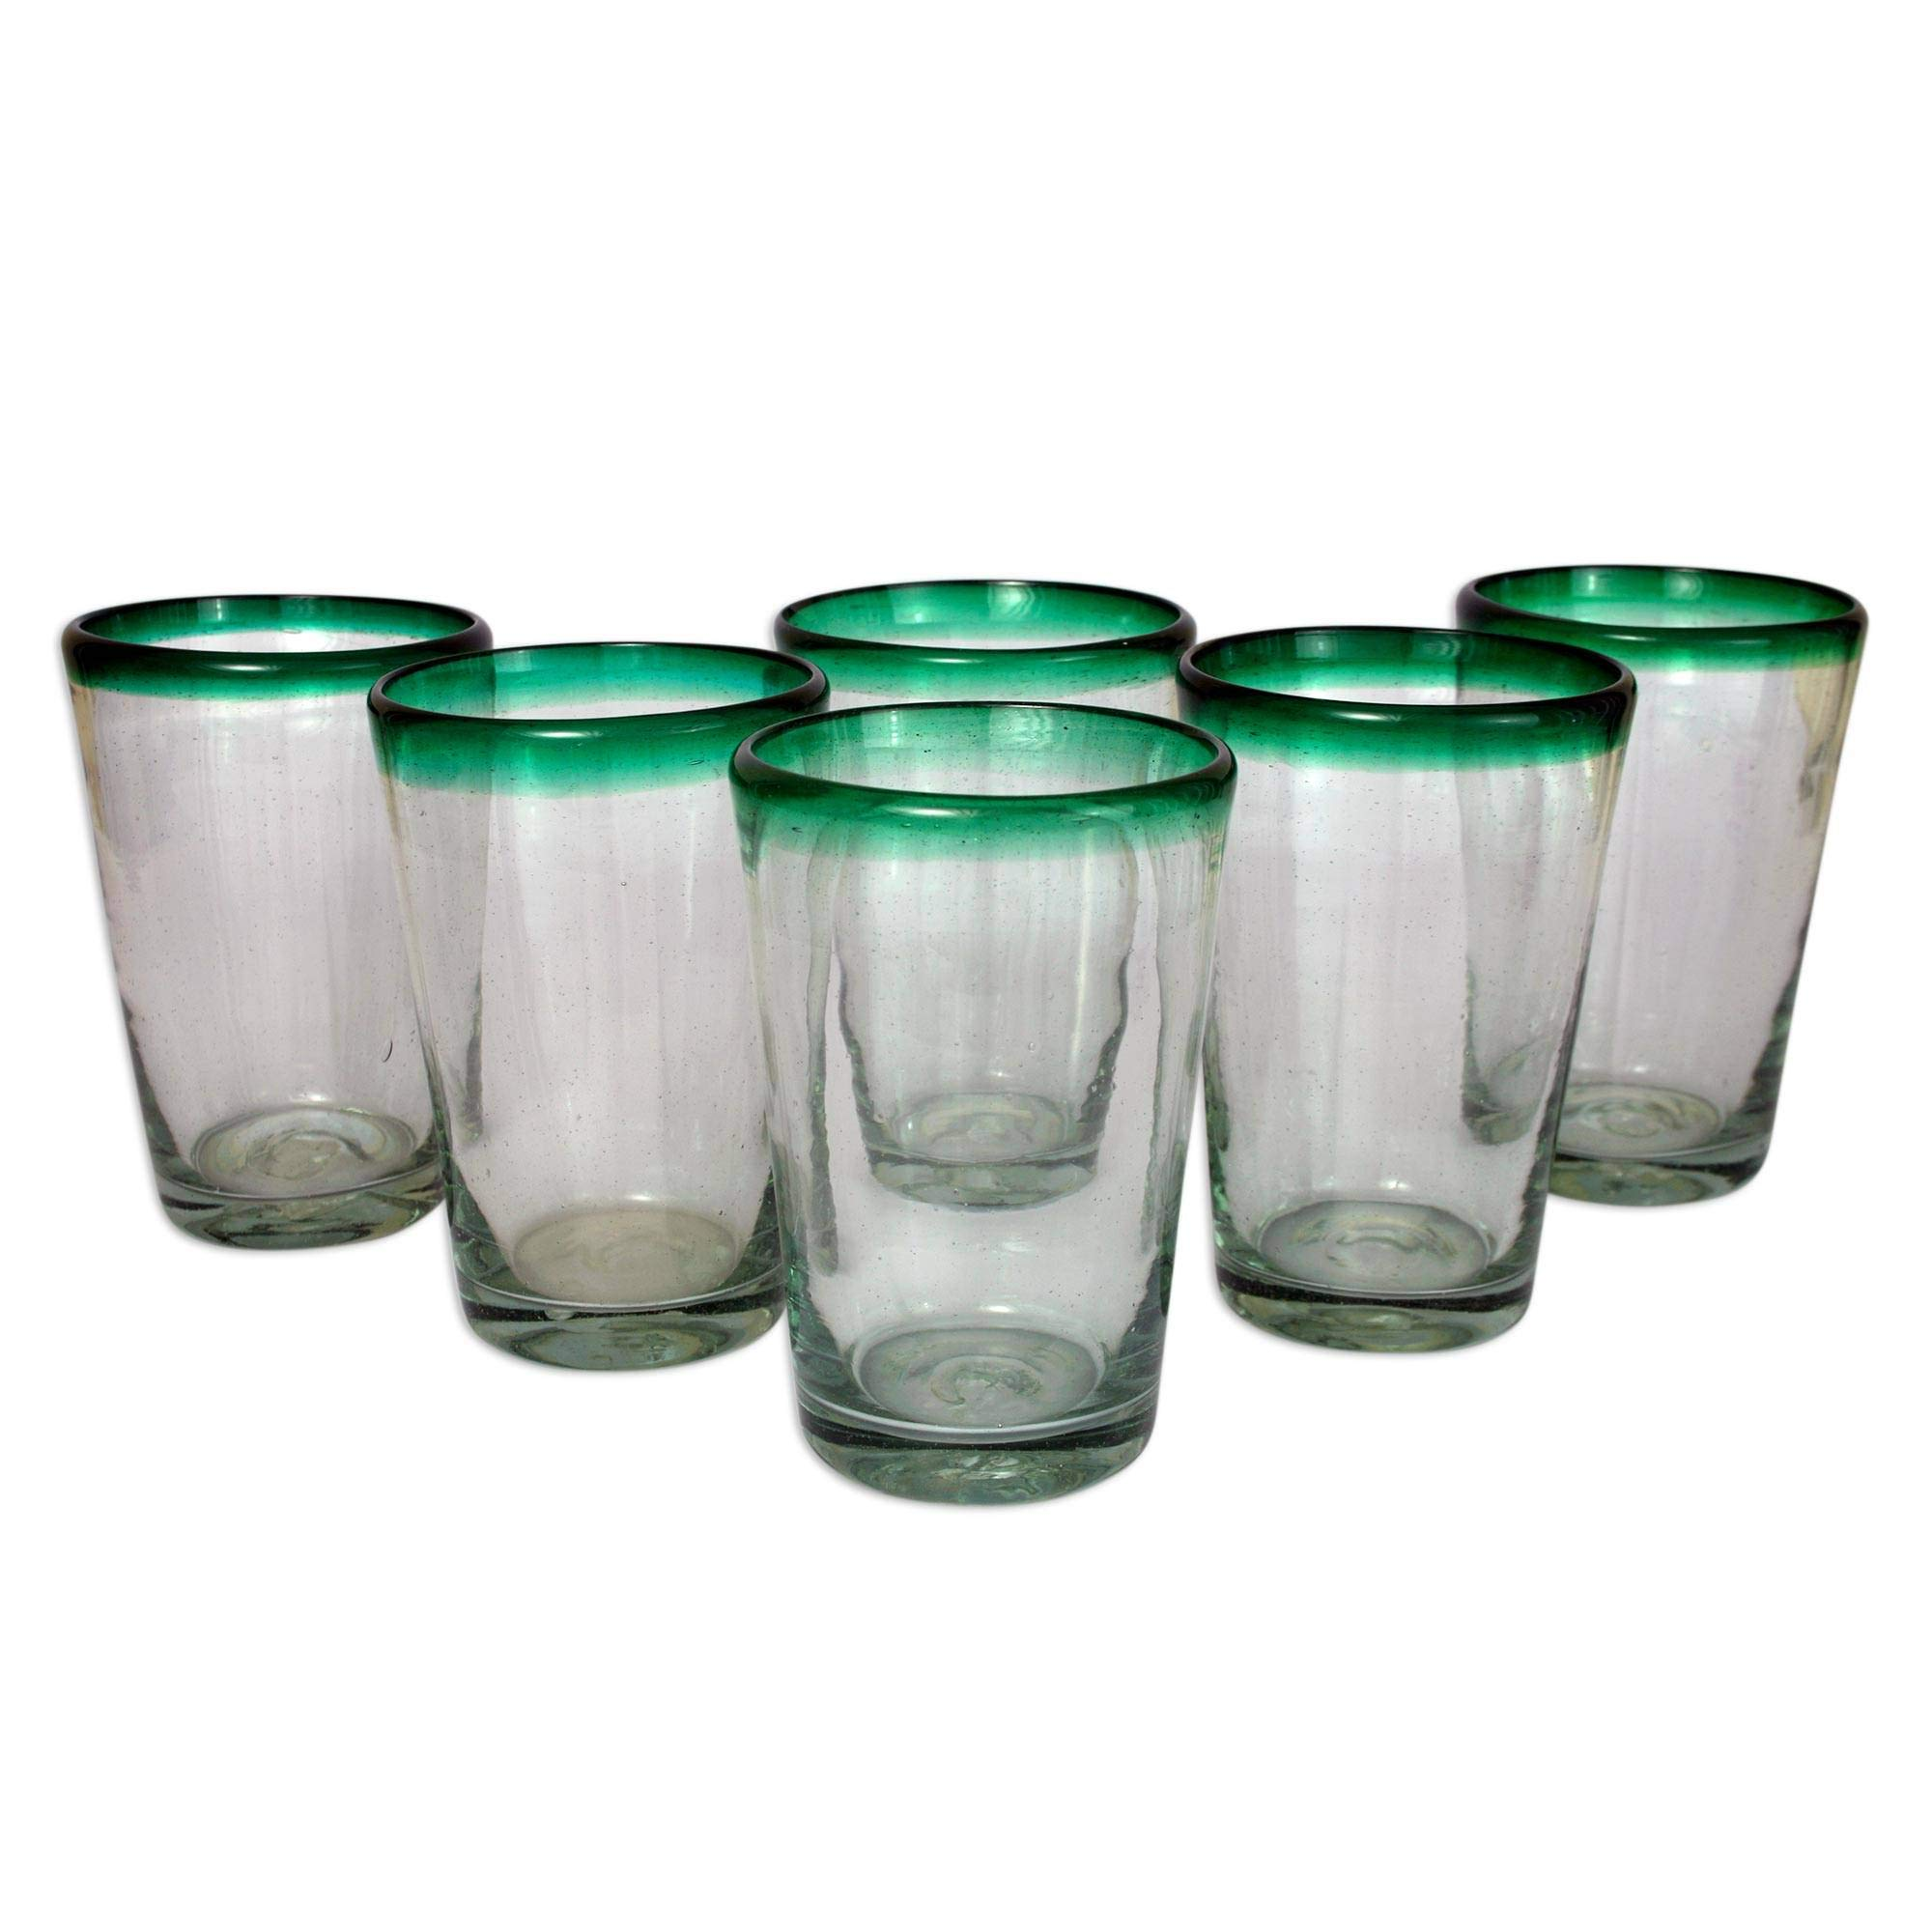 NOVICA Artisan Crafted Clear Green Glass Recycled Glasses, 15 oz 'Conical' (set of 6)